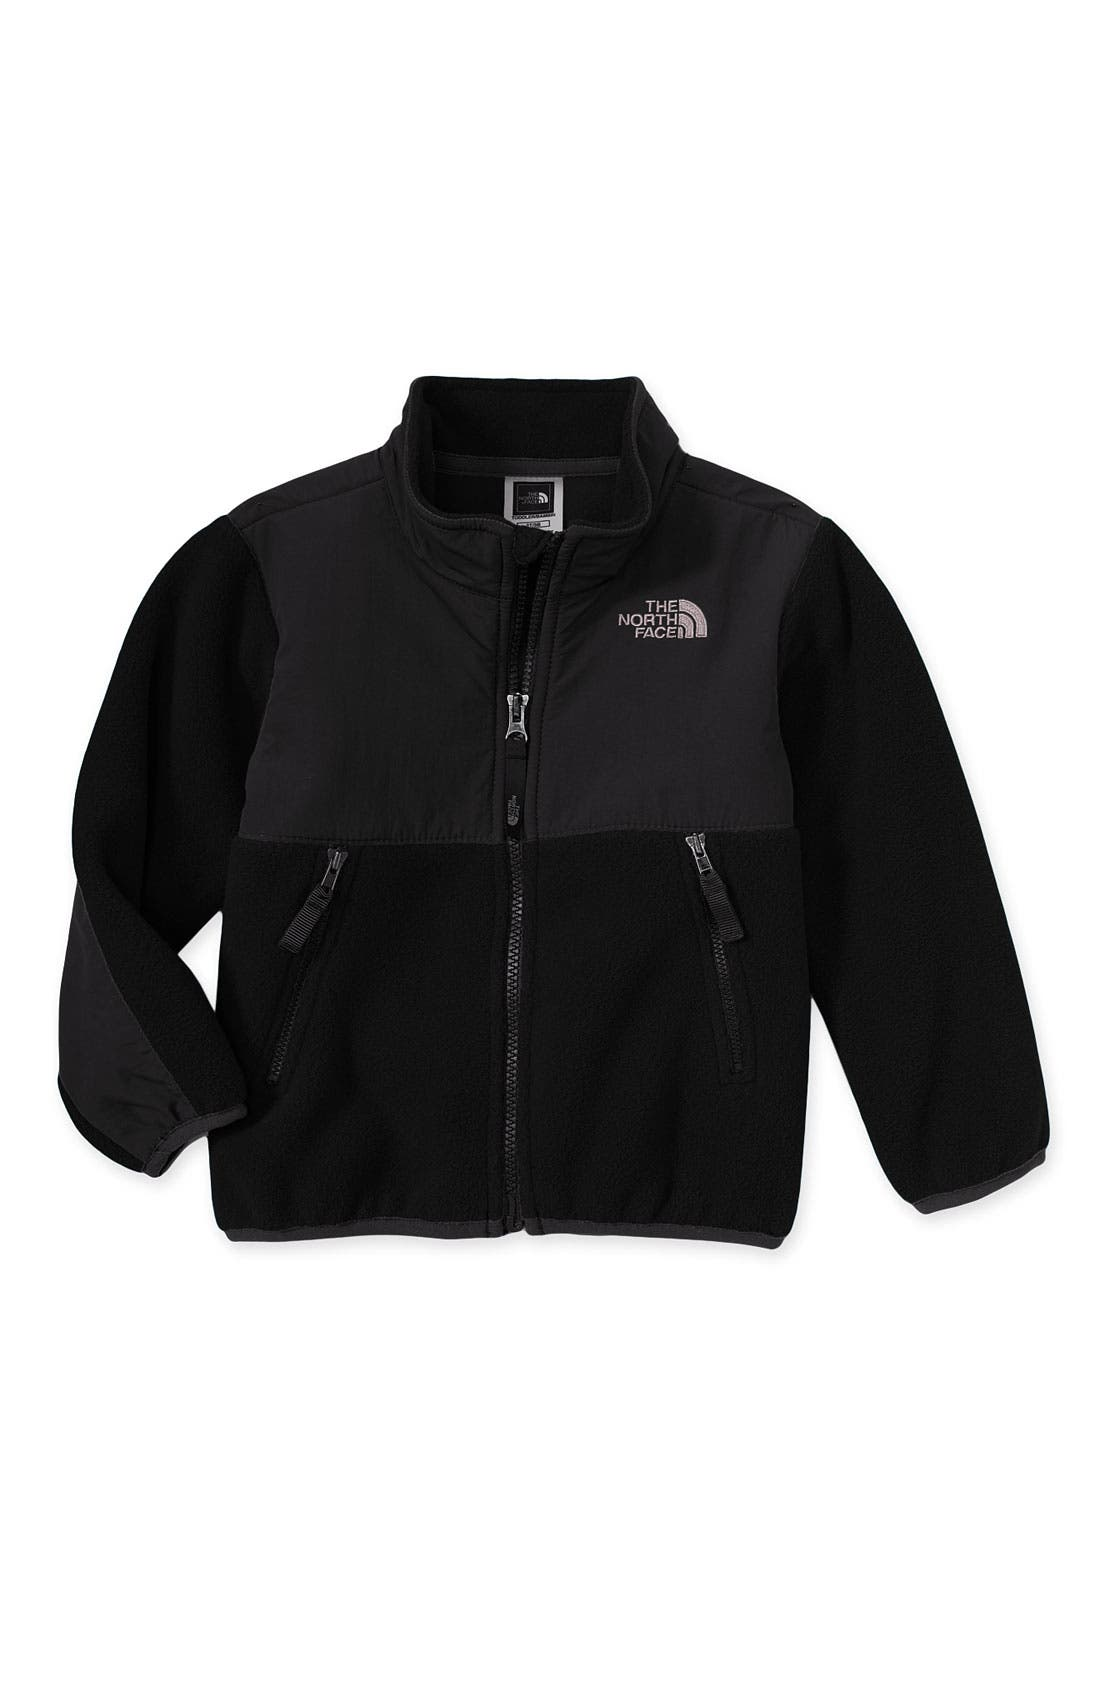 Main Image - The North Face 'Denali' Recycled Fleece Jacket (Toddler Boys)